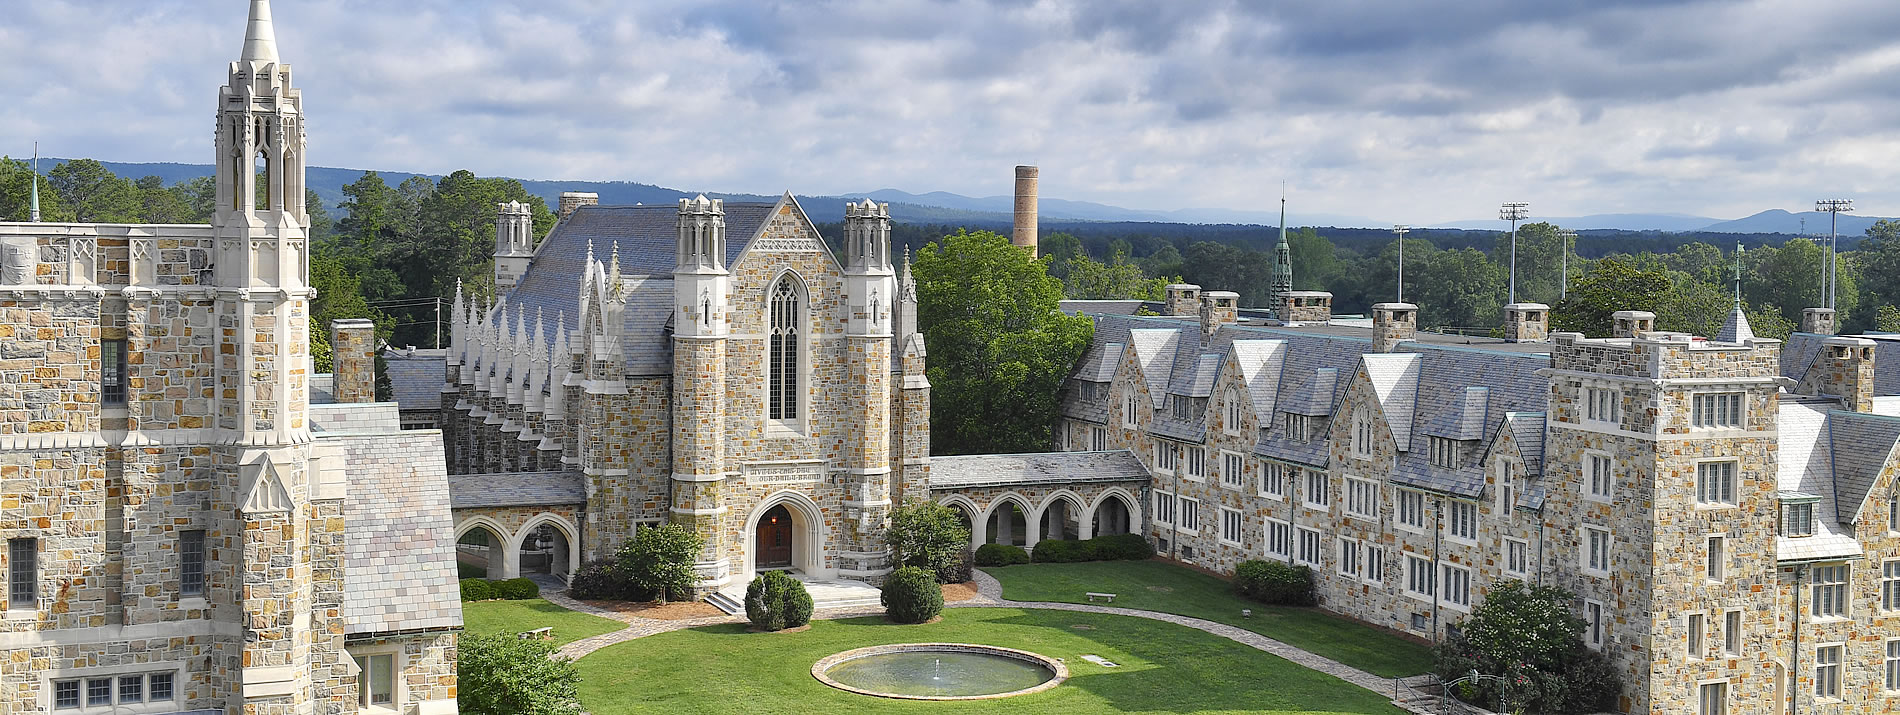 About Berry College